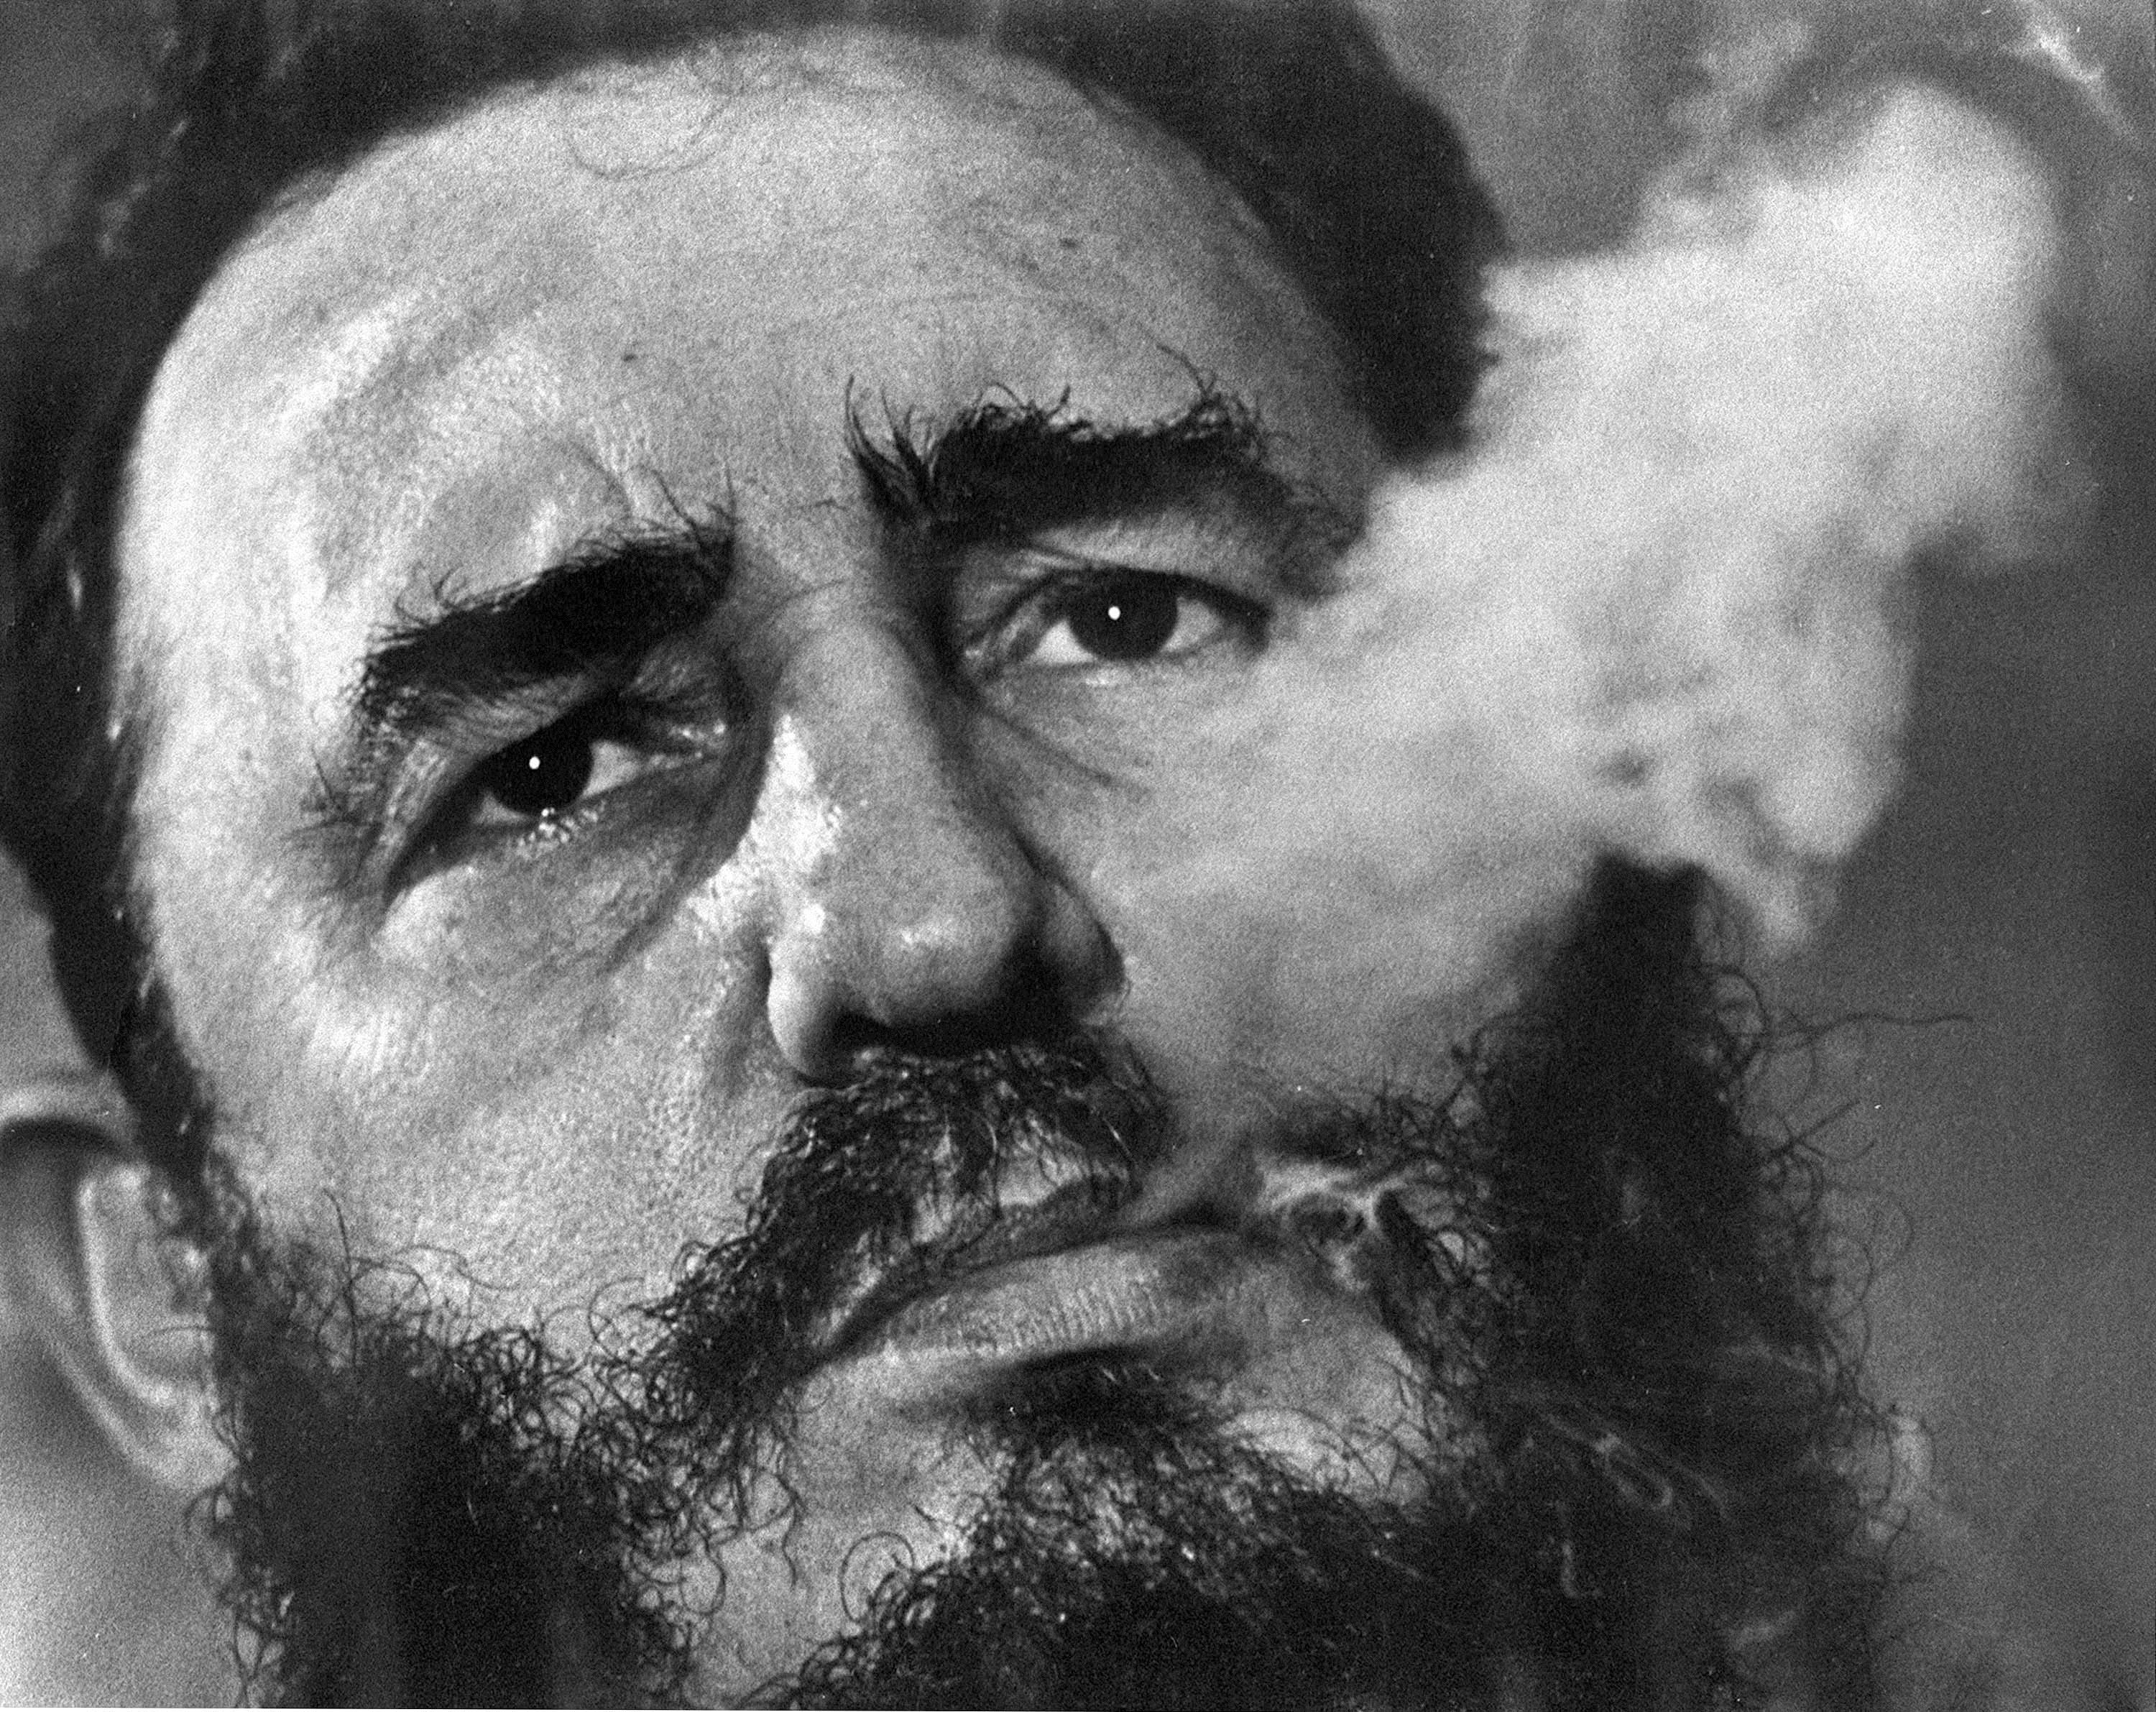 In this March 1985 AP file photo Cuba's leader Fidel Castro exhales cigar smoke during an interview at the presidential palace in Havana, Cuba. | AP file photo/Charles Tasnadi, St. George News